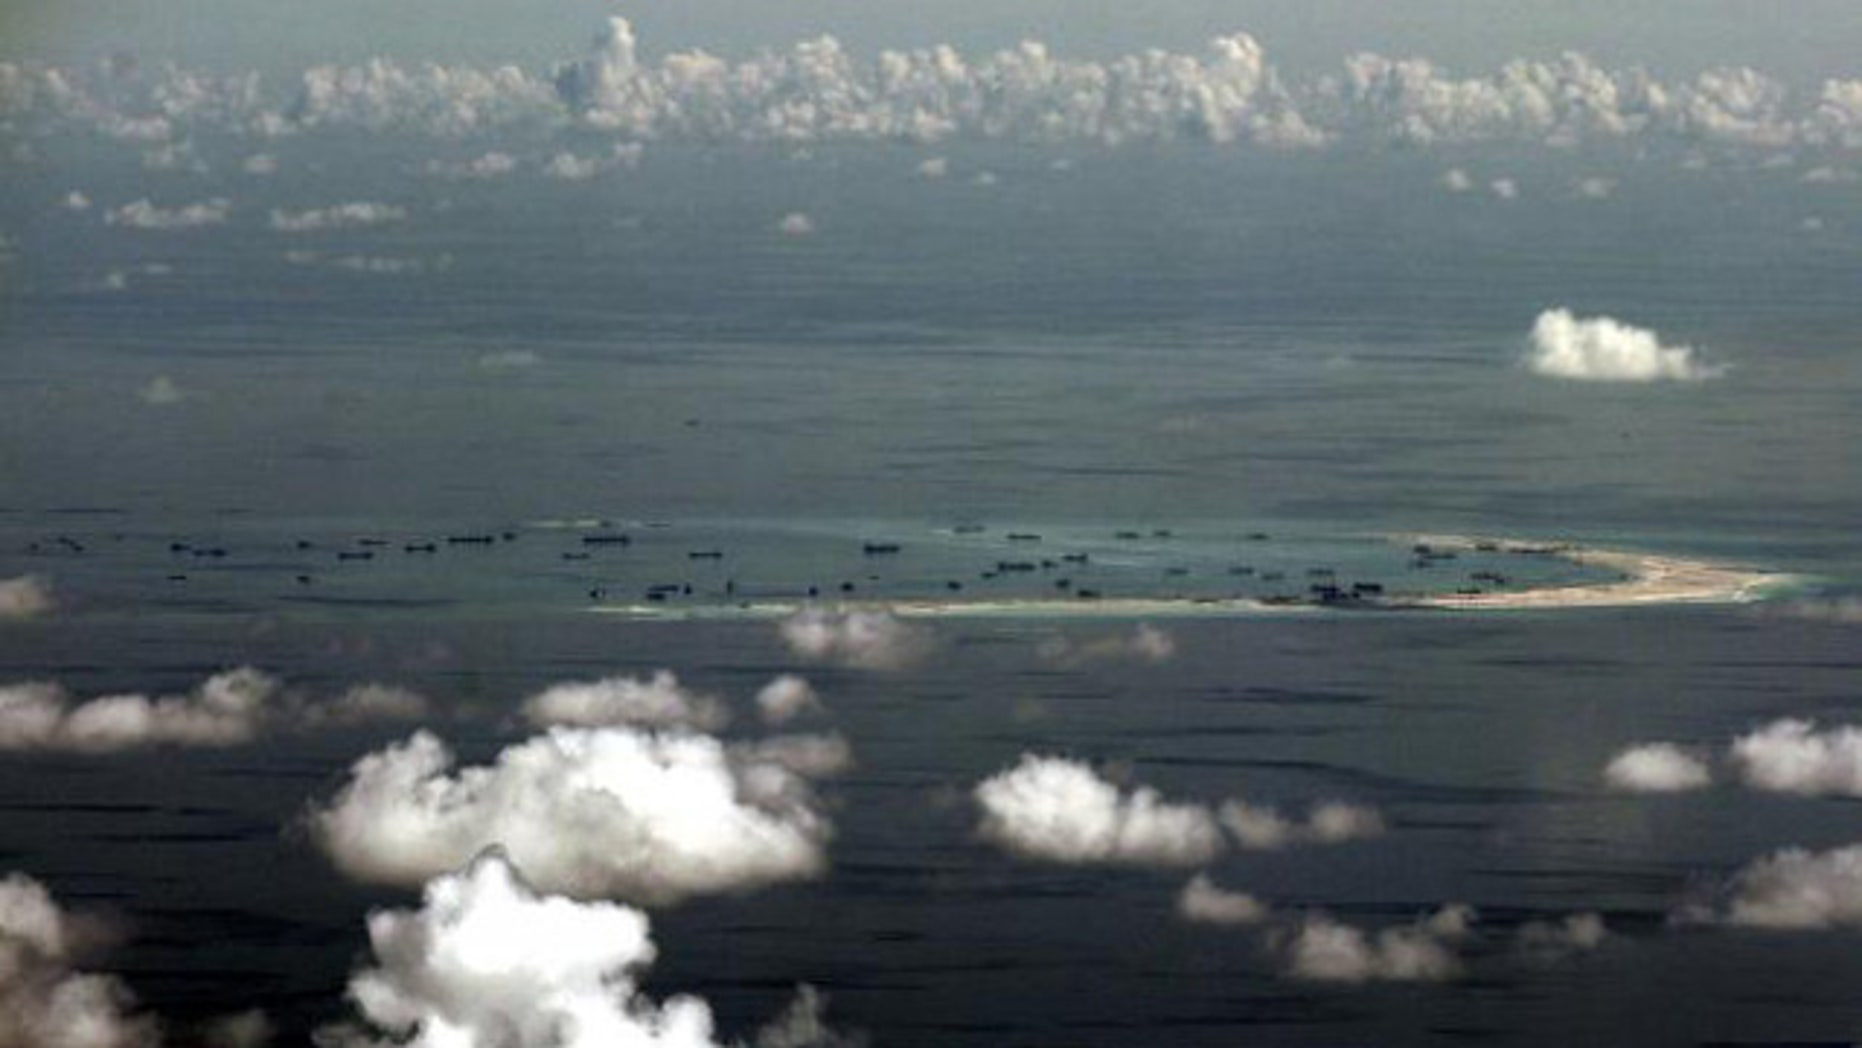 May 11, 2015: An aerial photo taken though a glass window of a Philippine military plane shows alleged on-going land reclamation by China on Mischief Reef in the Spratly Islands in the South China Sea, west of Palawan, Philippines. (REUTERS/RITCHIE B. TONGO)